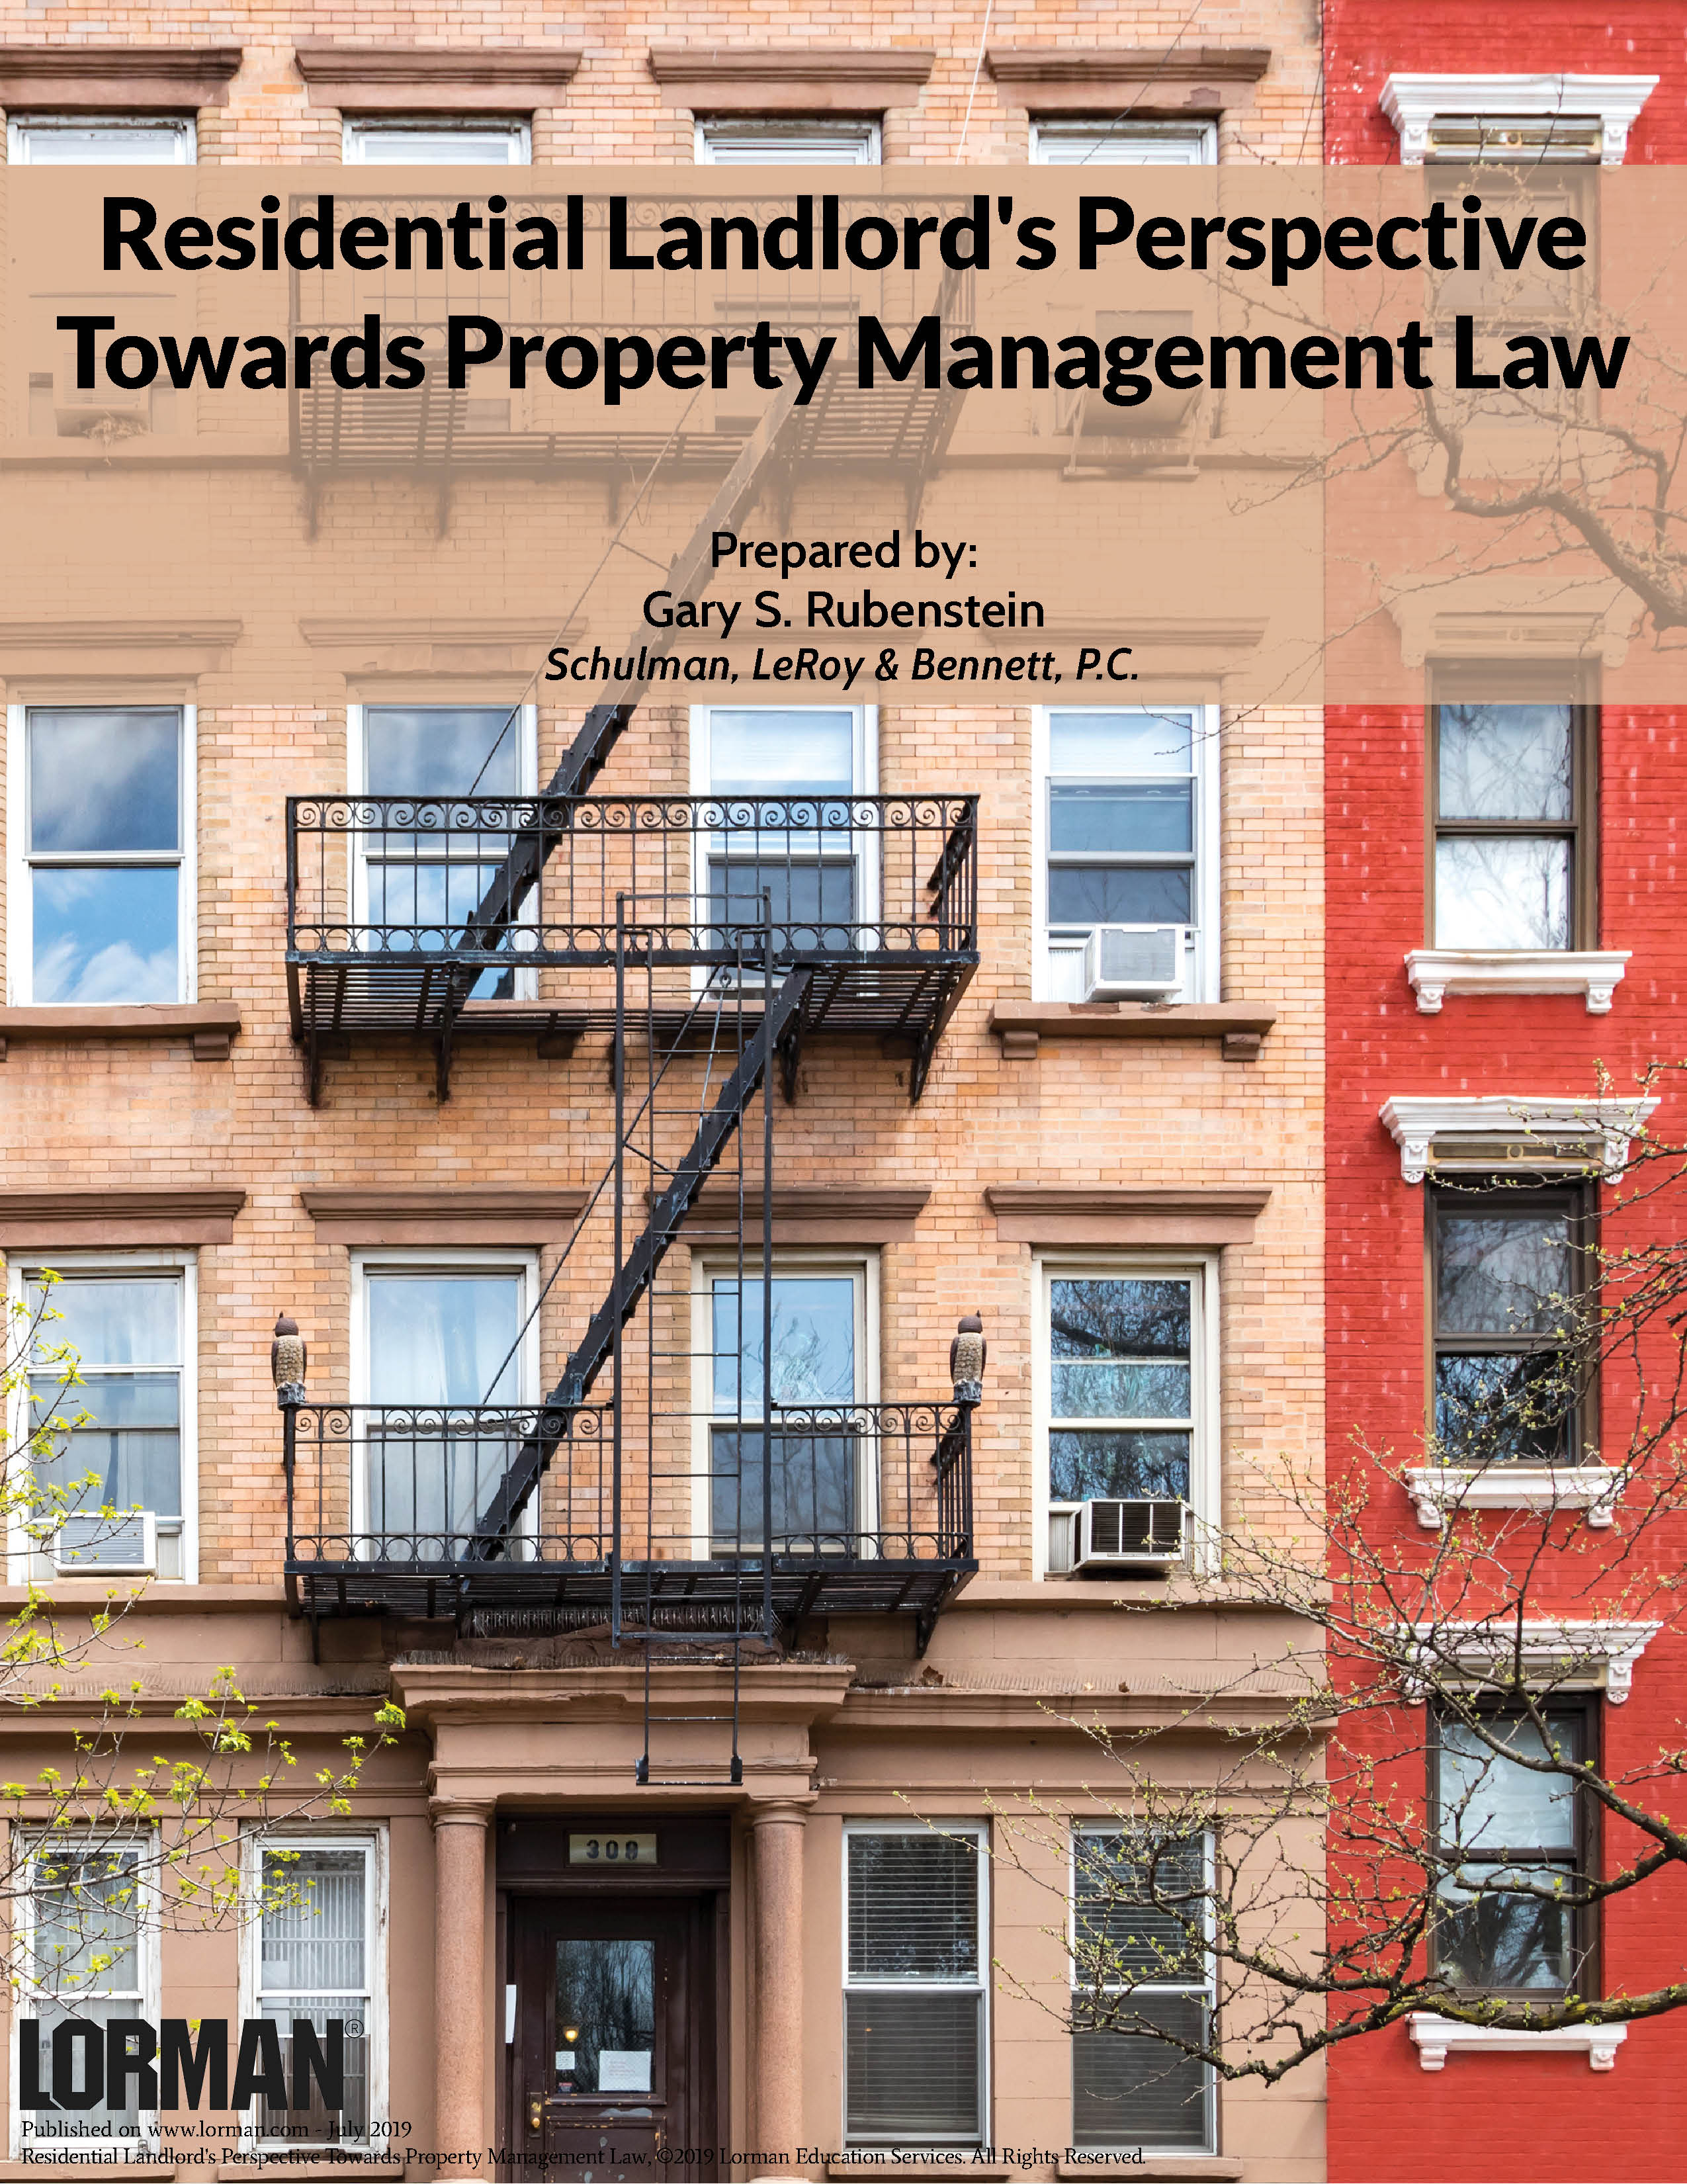 Residential Landlord's Perspective Towards Property Management Law